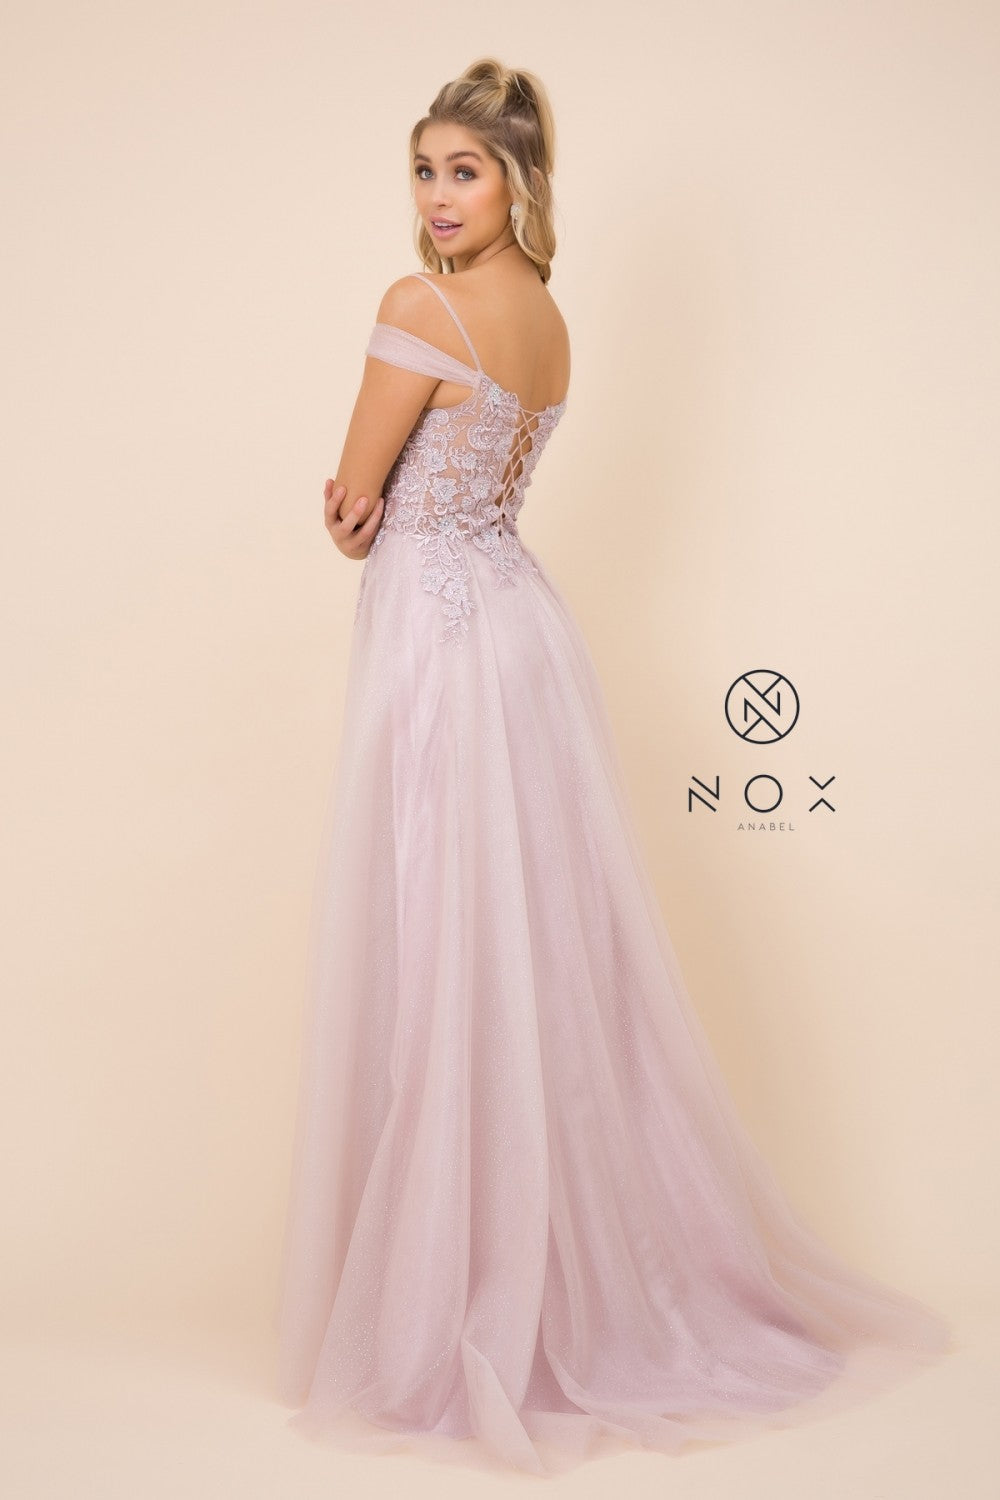 Nox N S265 - Cold Shoulder A-Line Ballgown with Sheer Floral Embroidered Bodice & Corset Back - Diggz Prom